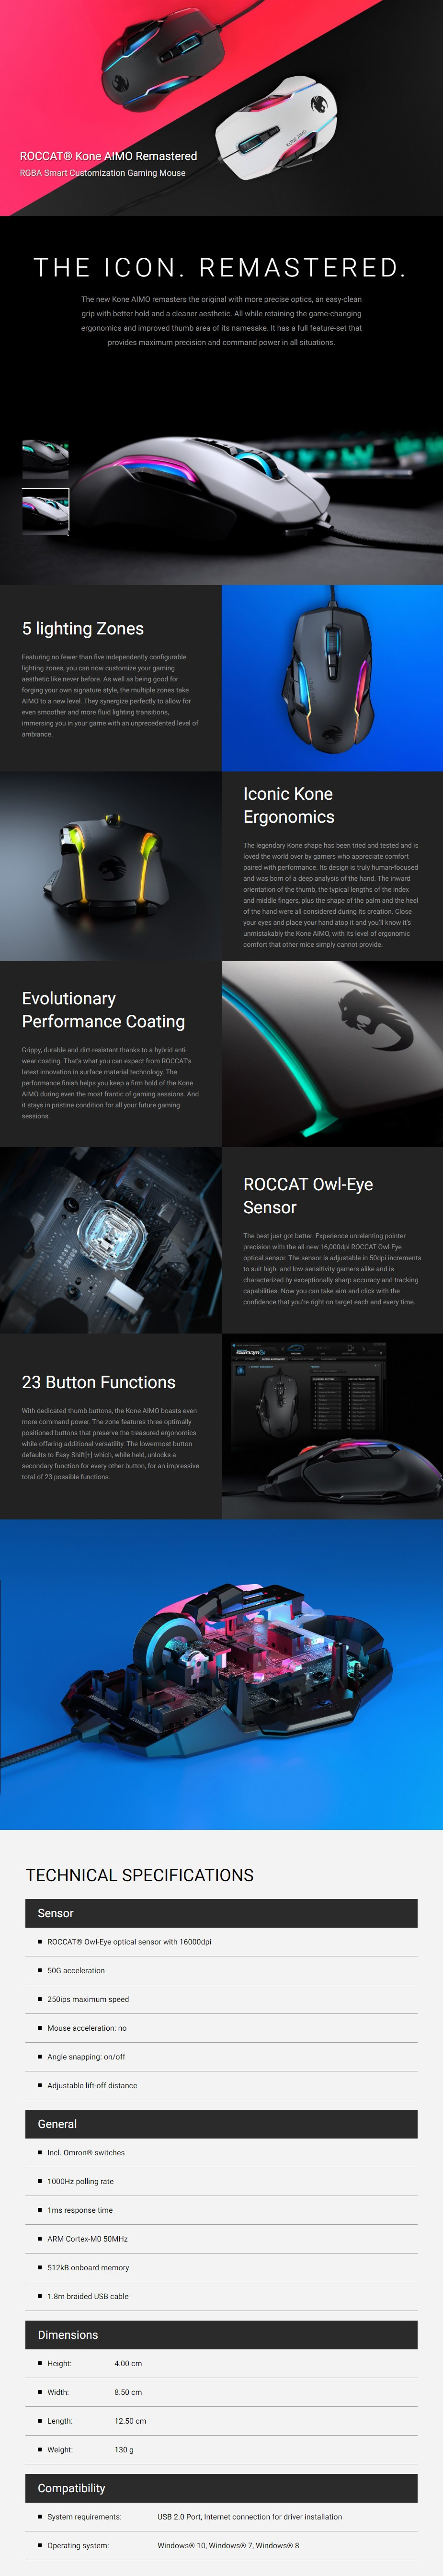 ROCCAT Kone AIMO Remastered RGB Optical Gaming Mouse - White - Overview 1